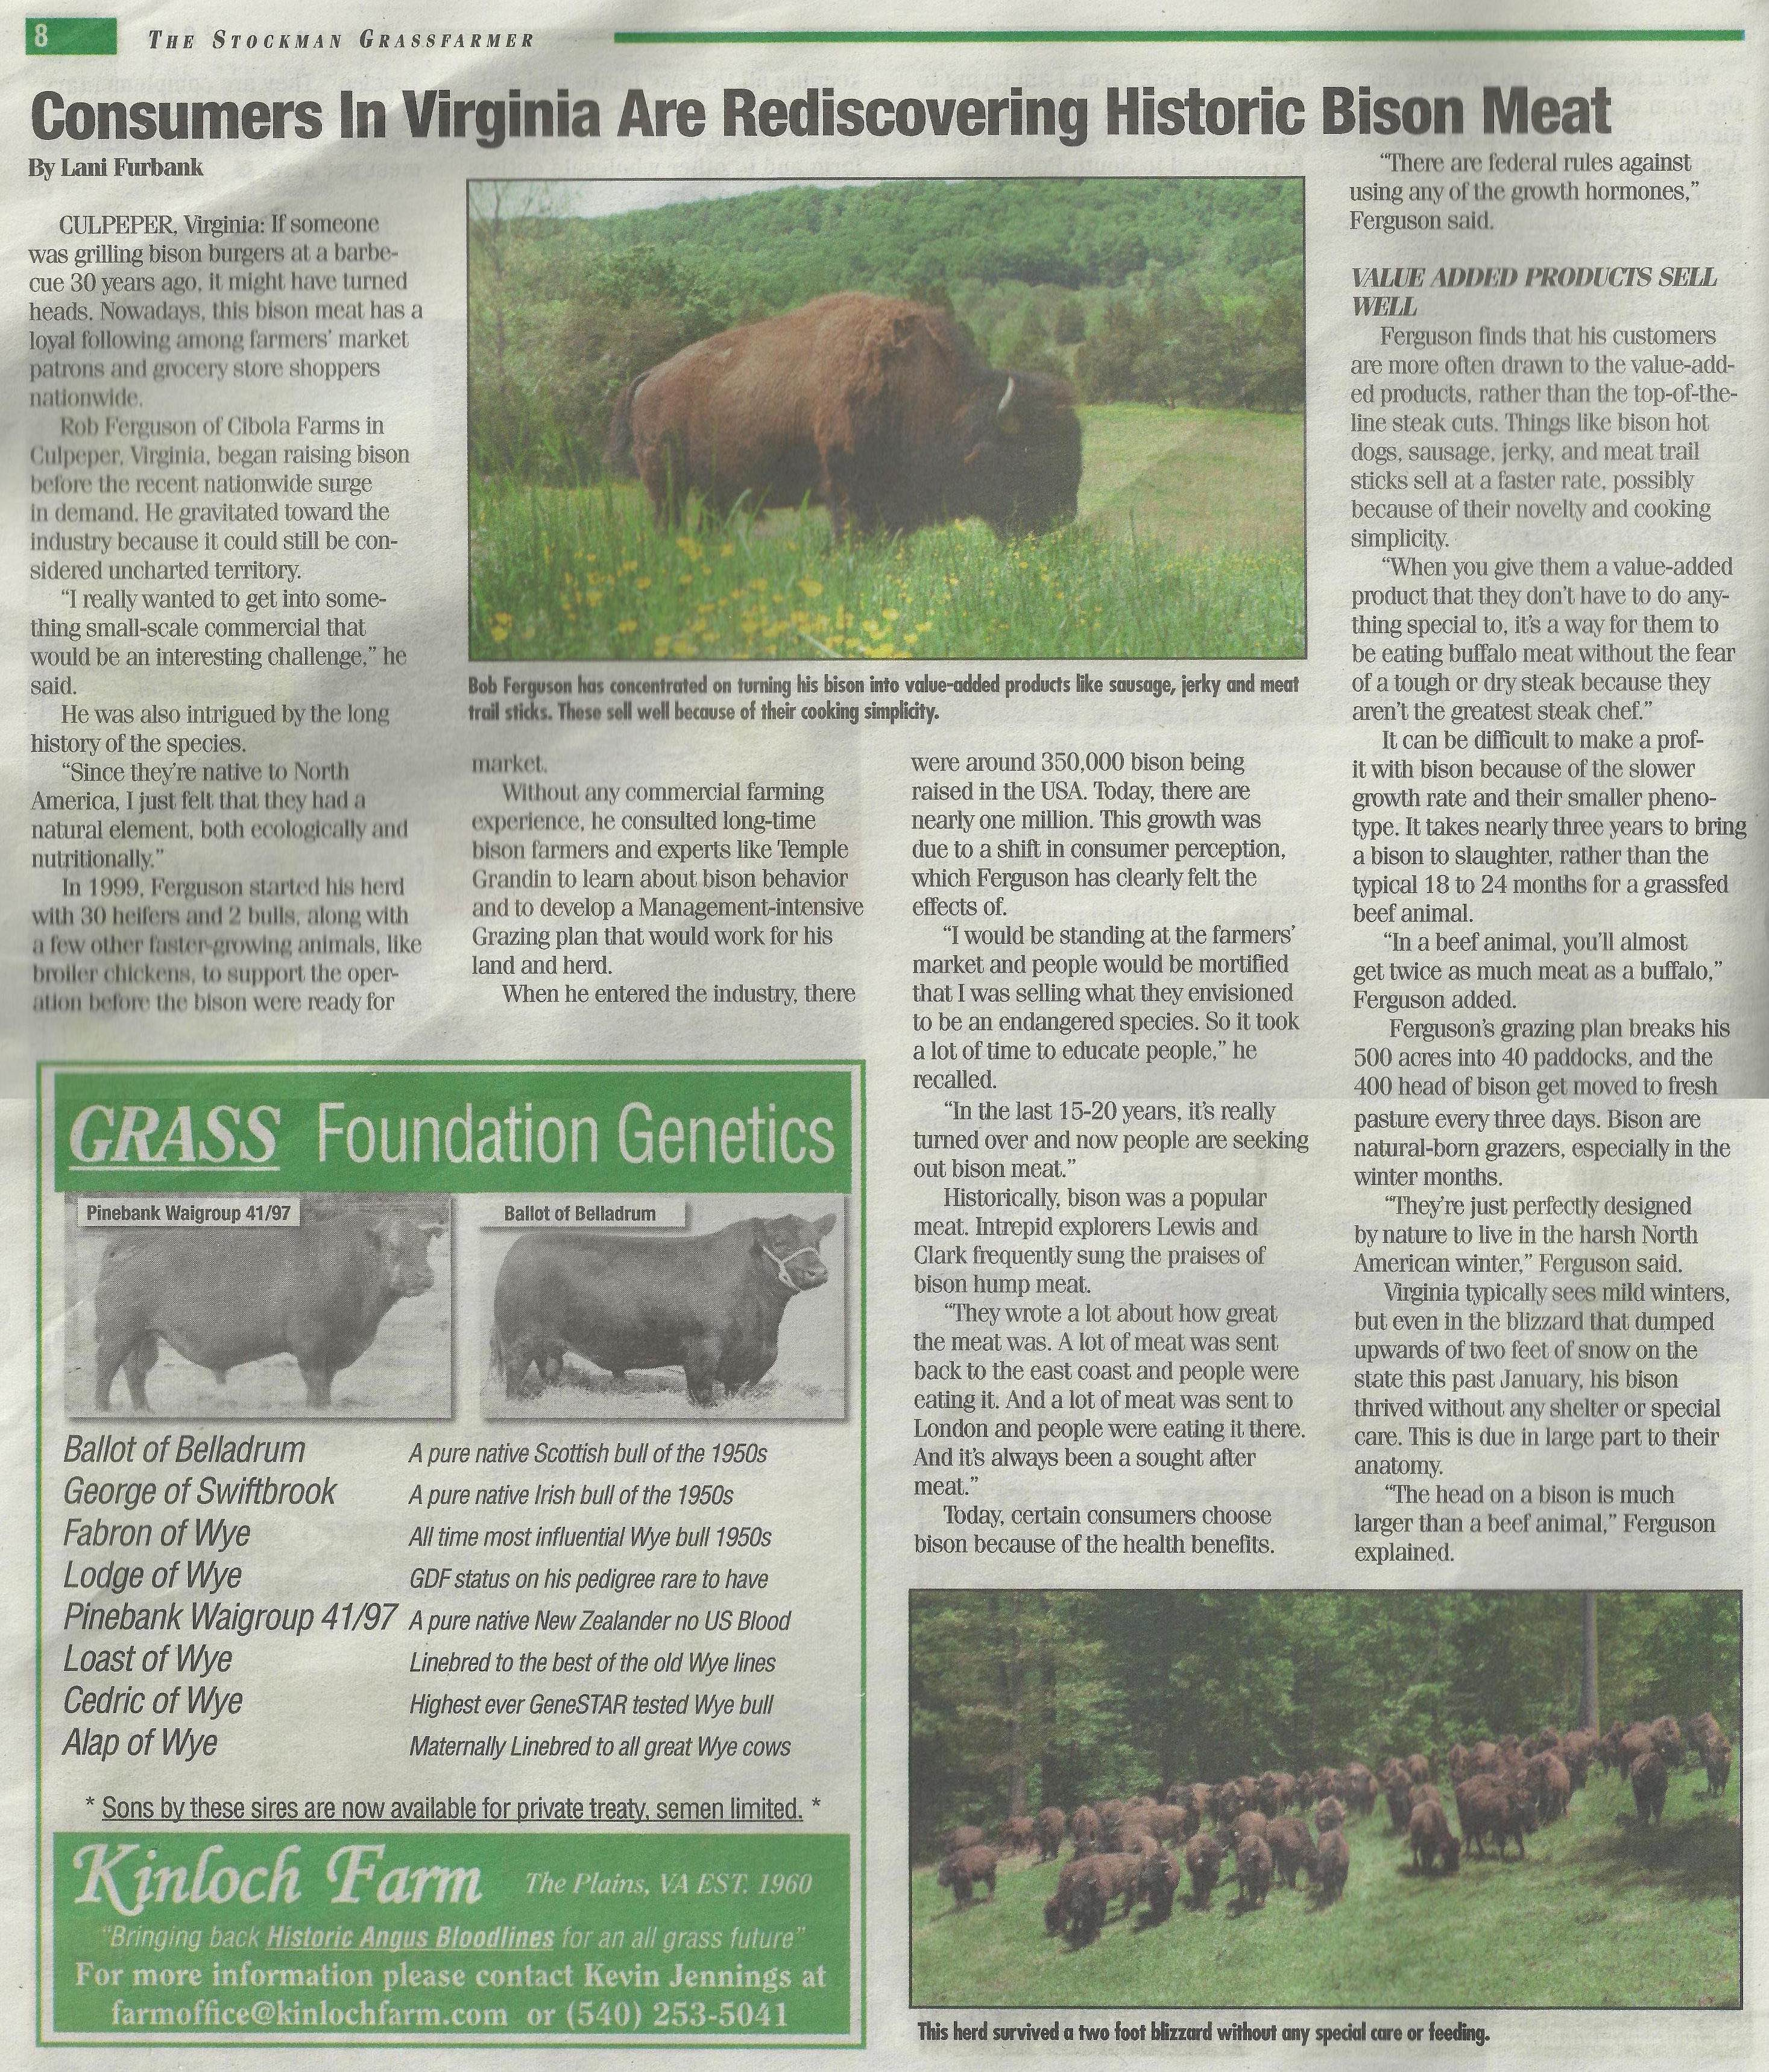 sgf-bison-page-1